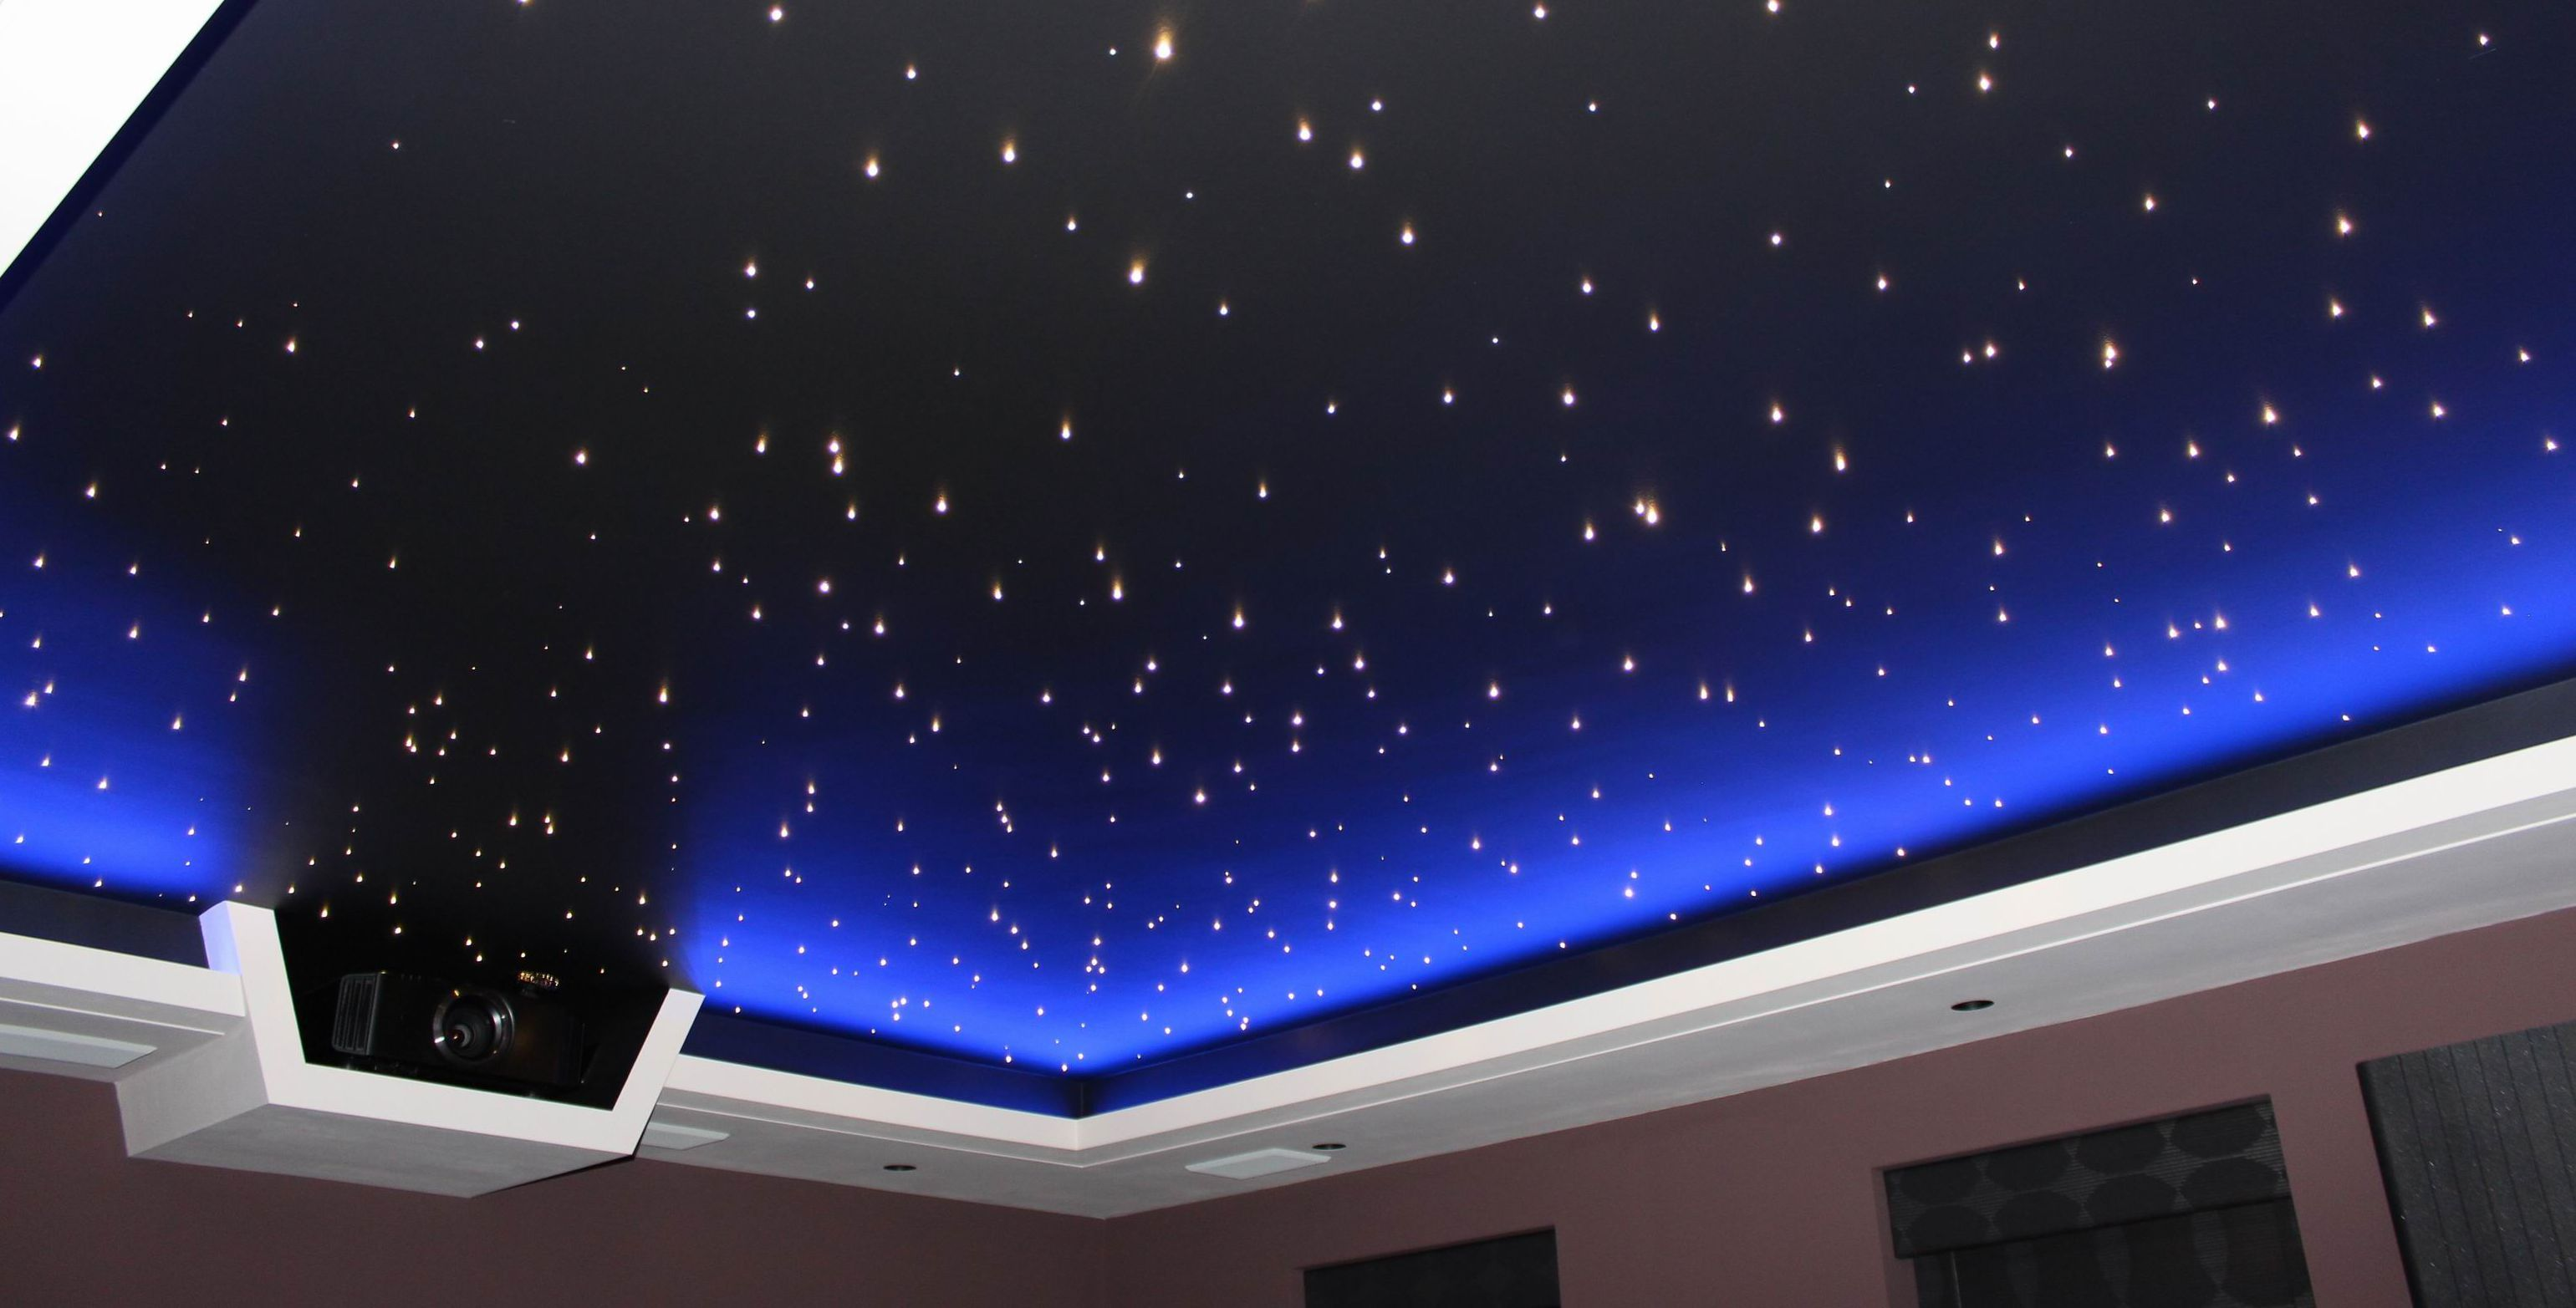 Home cimema star ceiling with blue led surround jpg 3081 1565